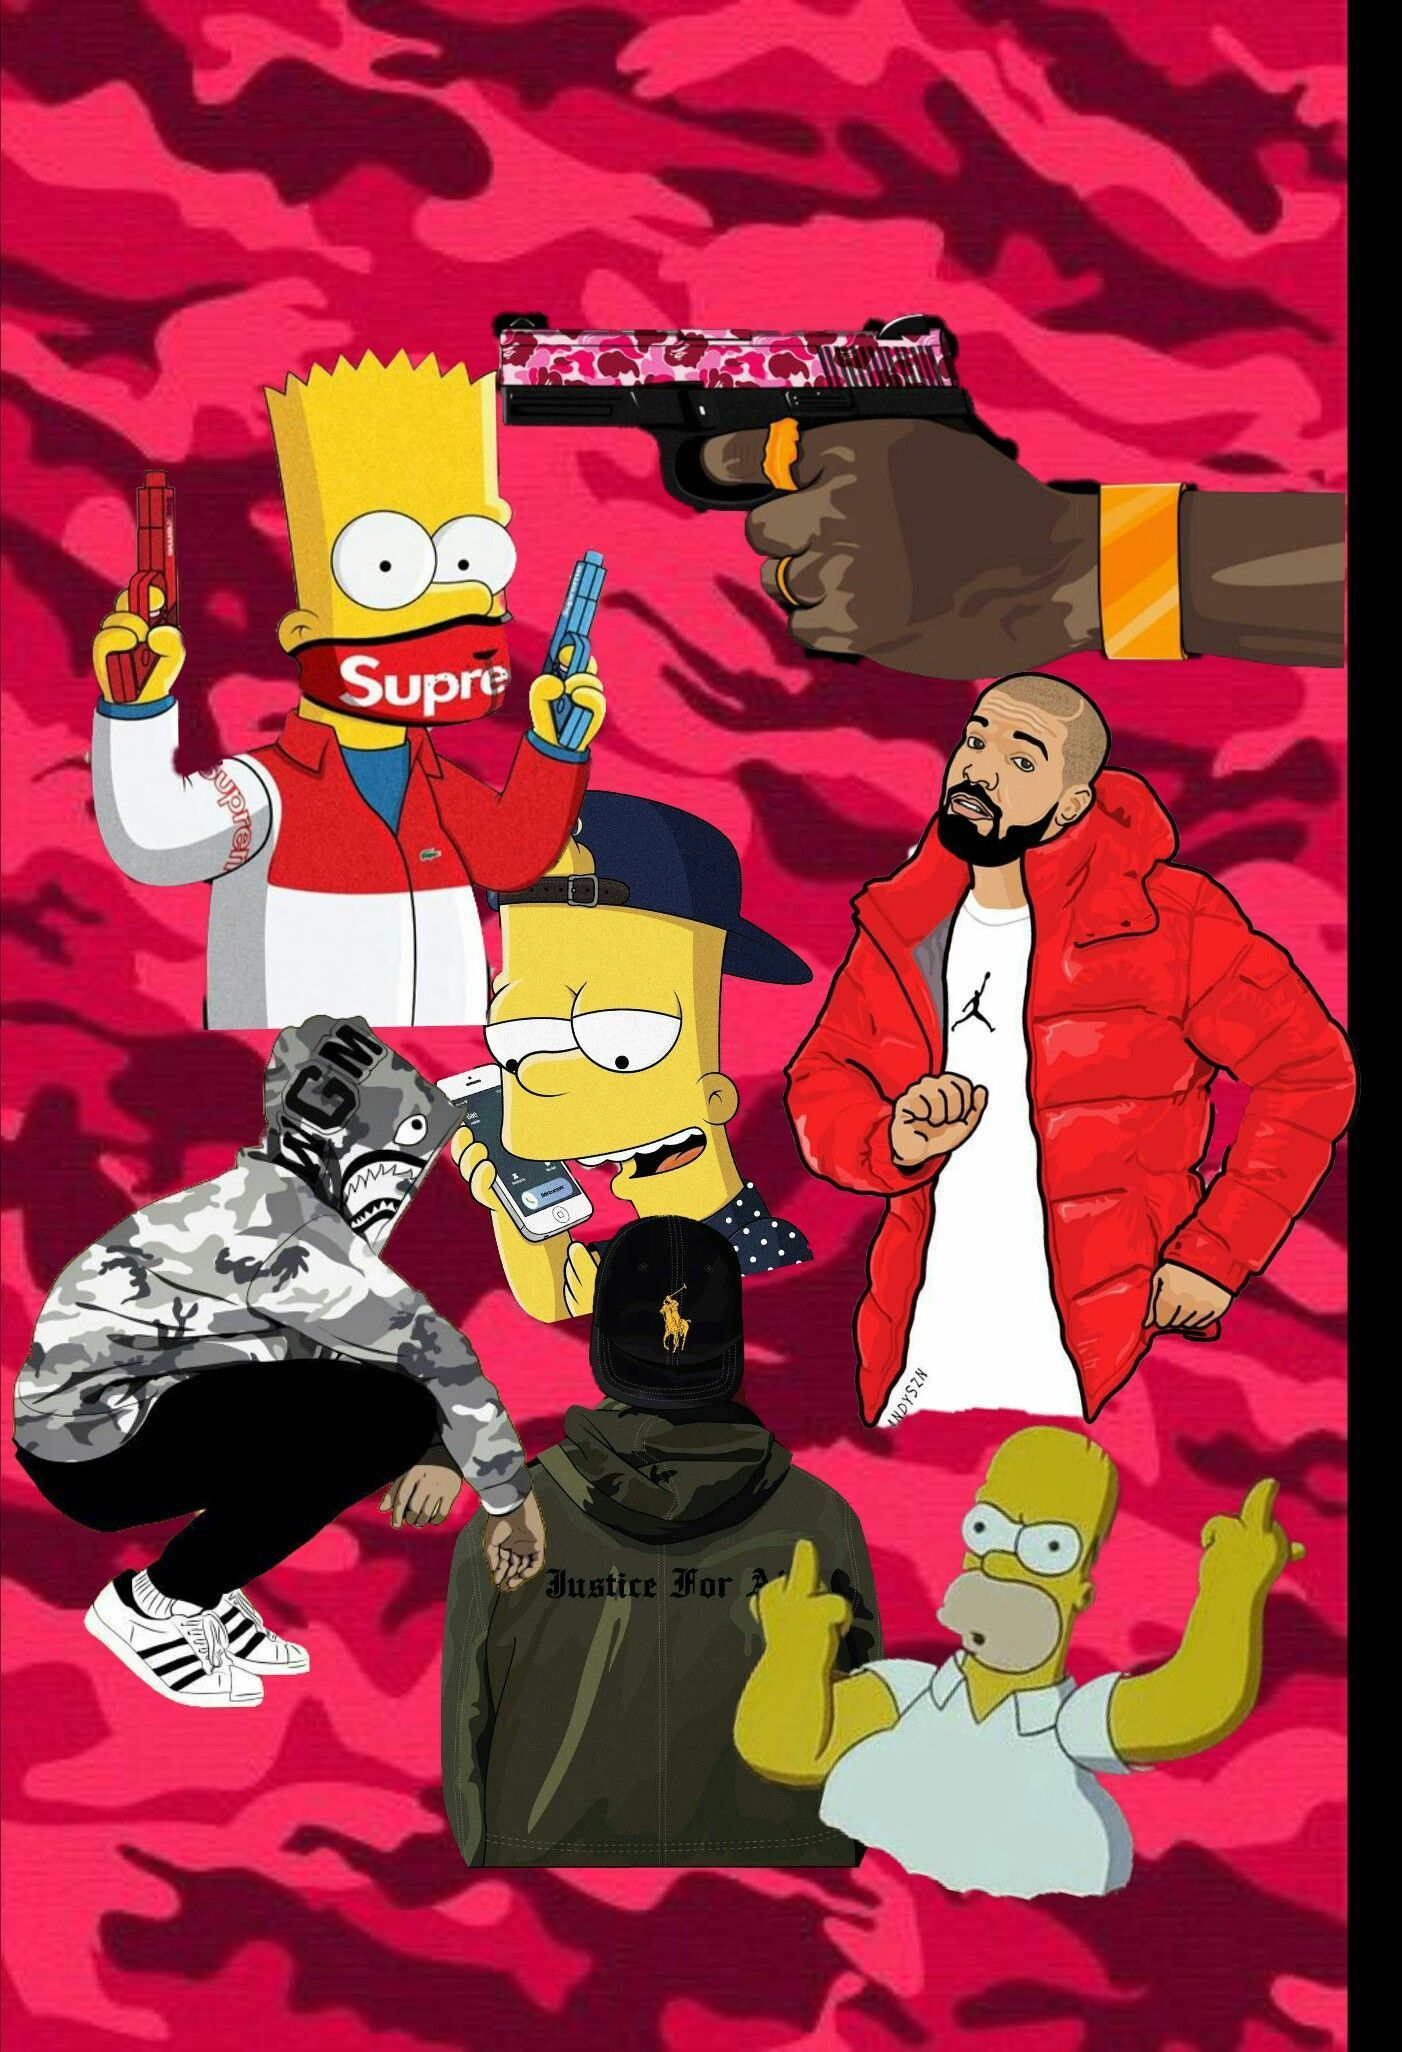 65 Bape Bart Simpson Wallpapers Download At Wallpaperbro Bart Simpson Art Bape Wallpapers Simpson Wallpaper Iphone